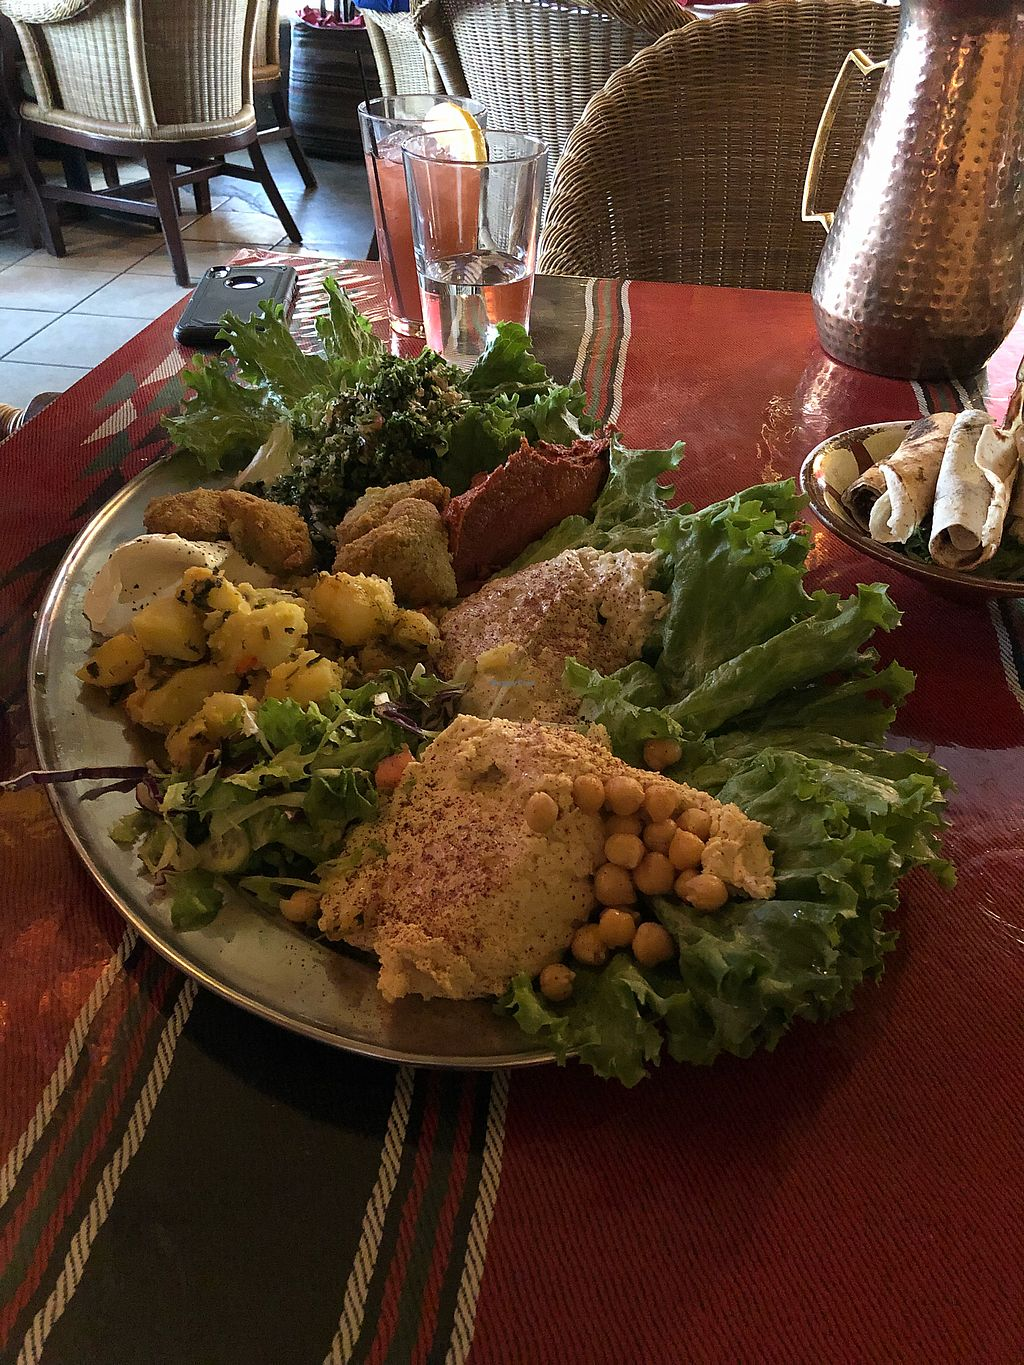 """Photo of Ranoush  by <a href=""""/members/profile/LindMiy"""">LindMiy</a> <br/>Vegetarian platter for 2! Amazing!  <br/> January 26, 2018  - <a href='/contact/abuse/image/76036/350949'>Report</a>"""